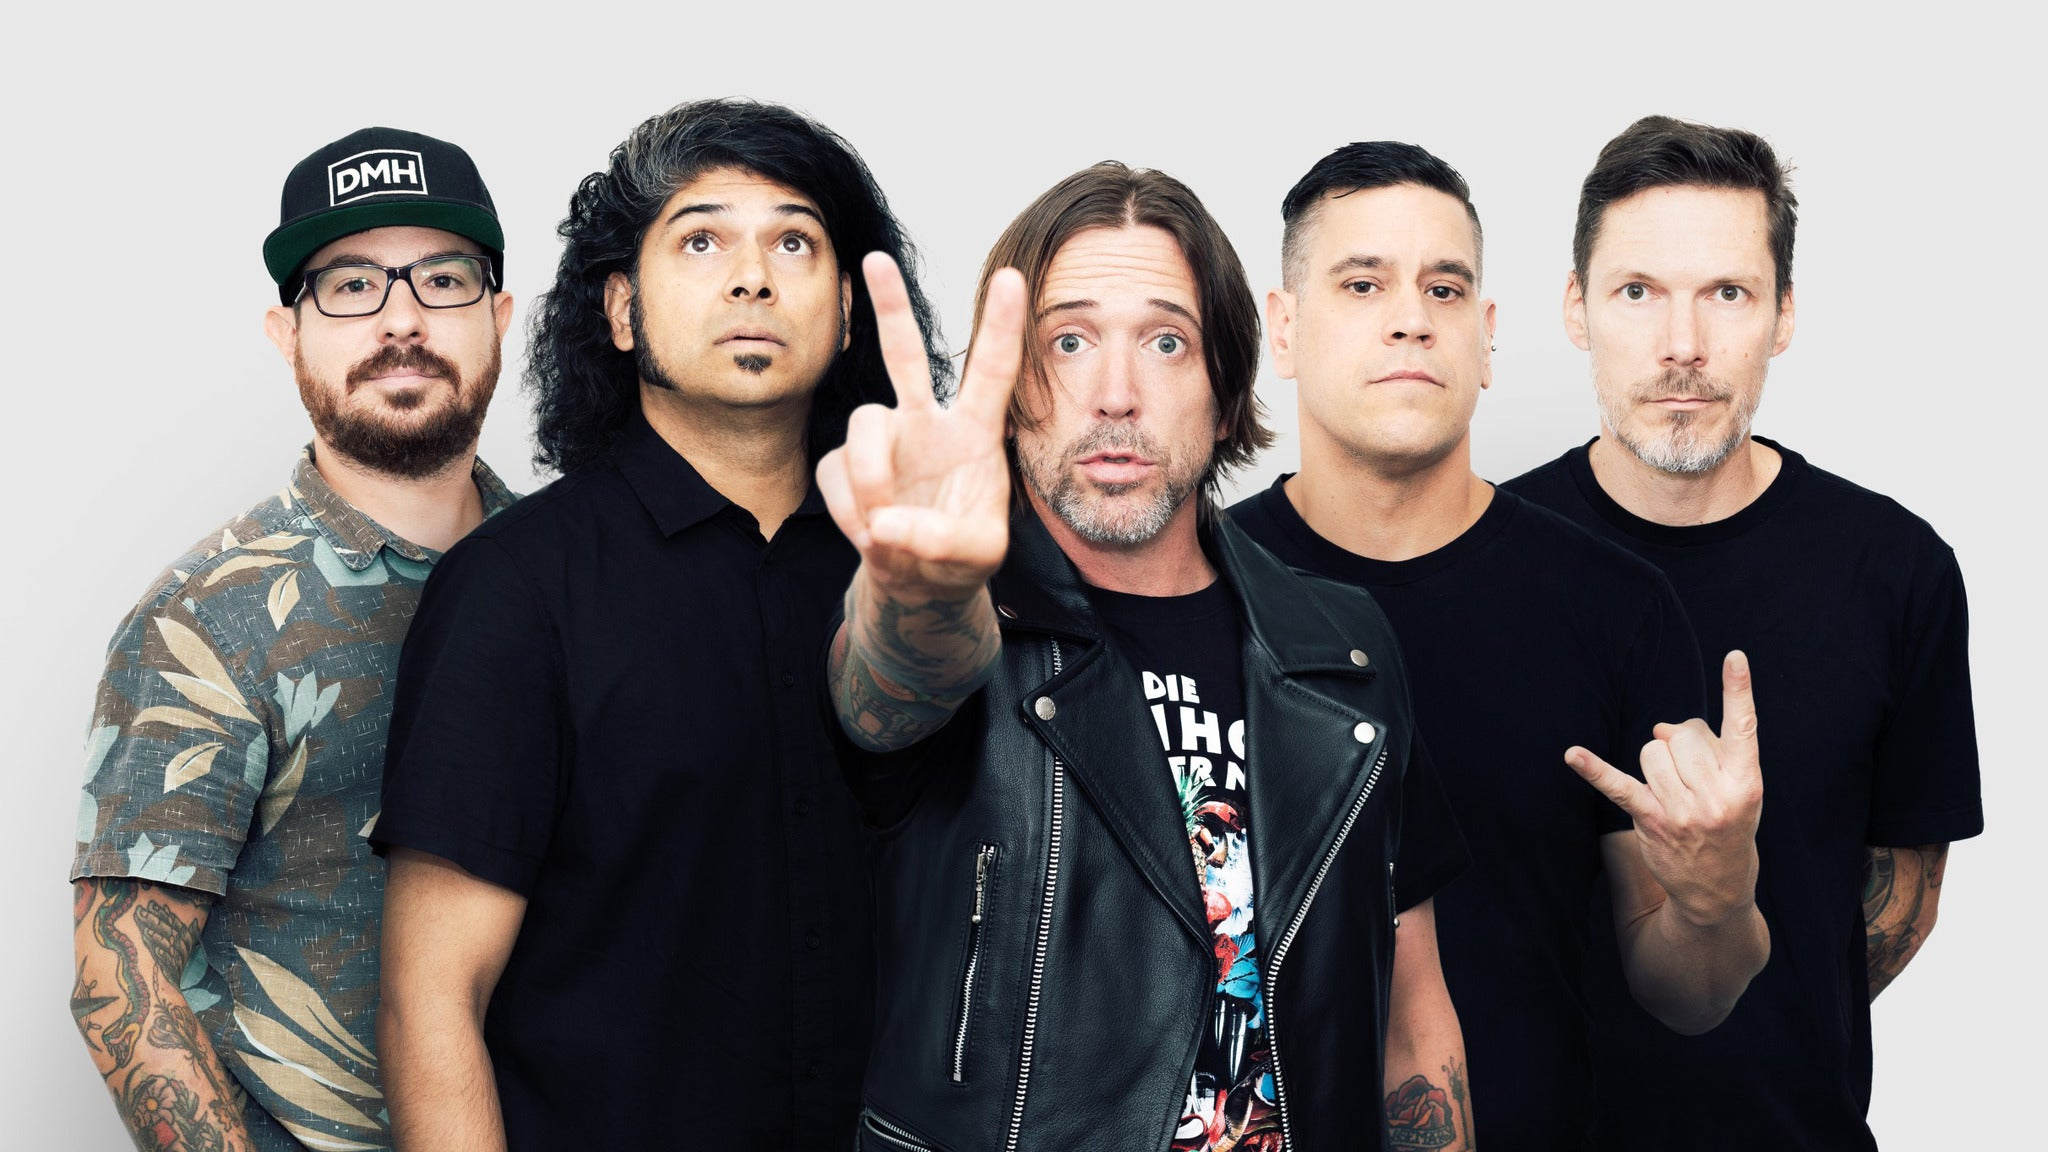 Billy Talent & Rise Against presale code